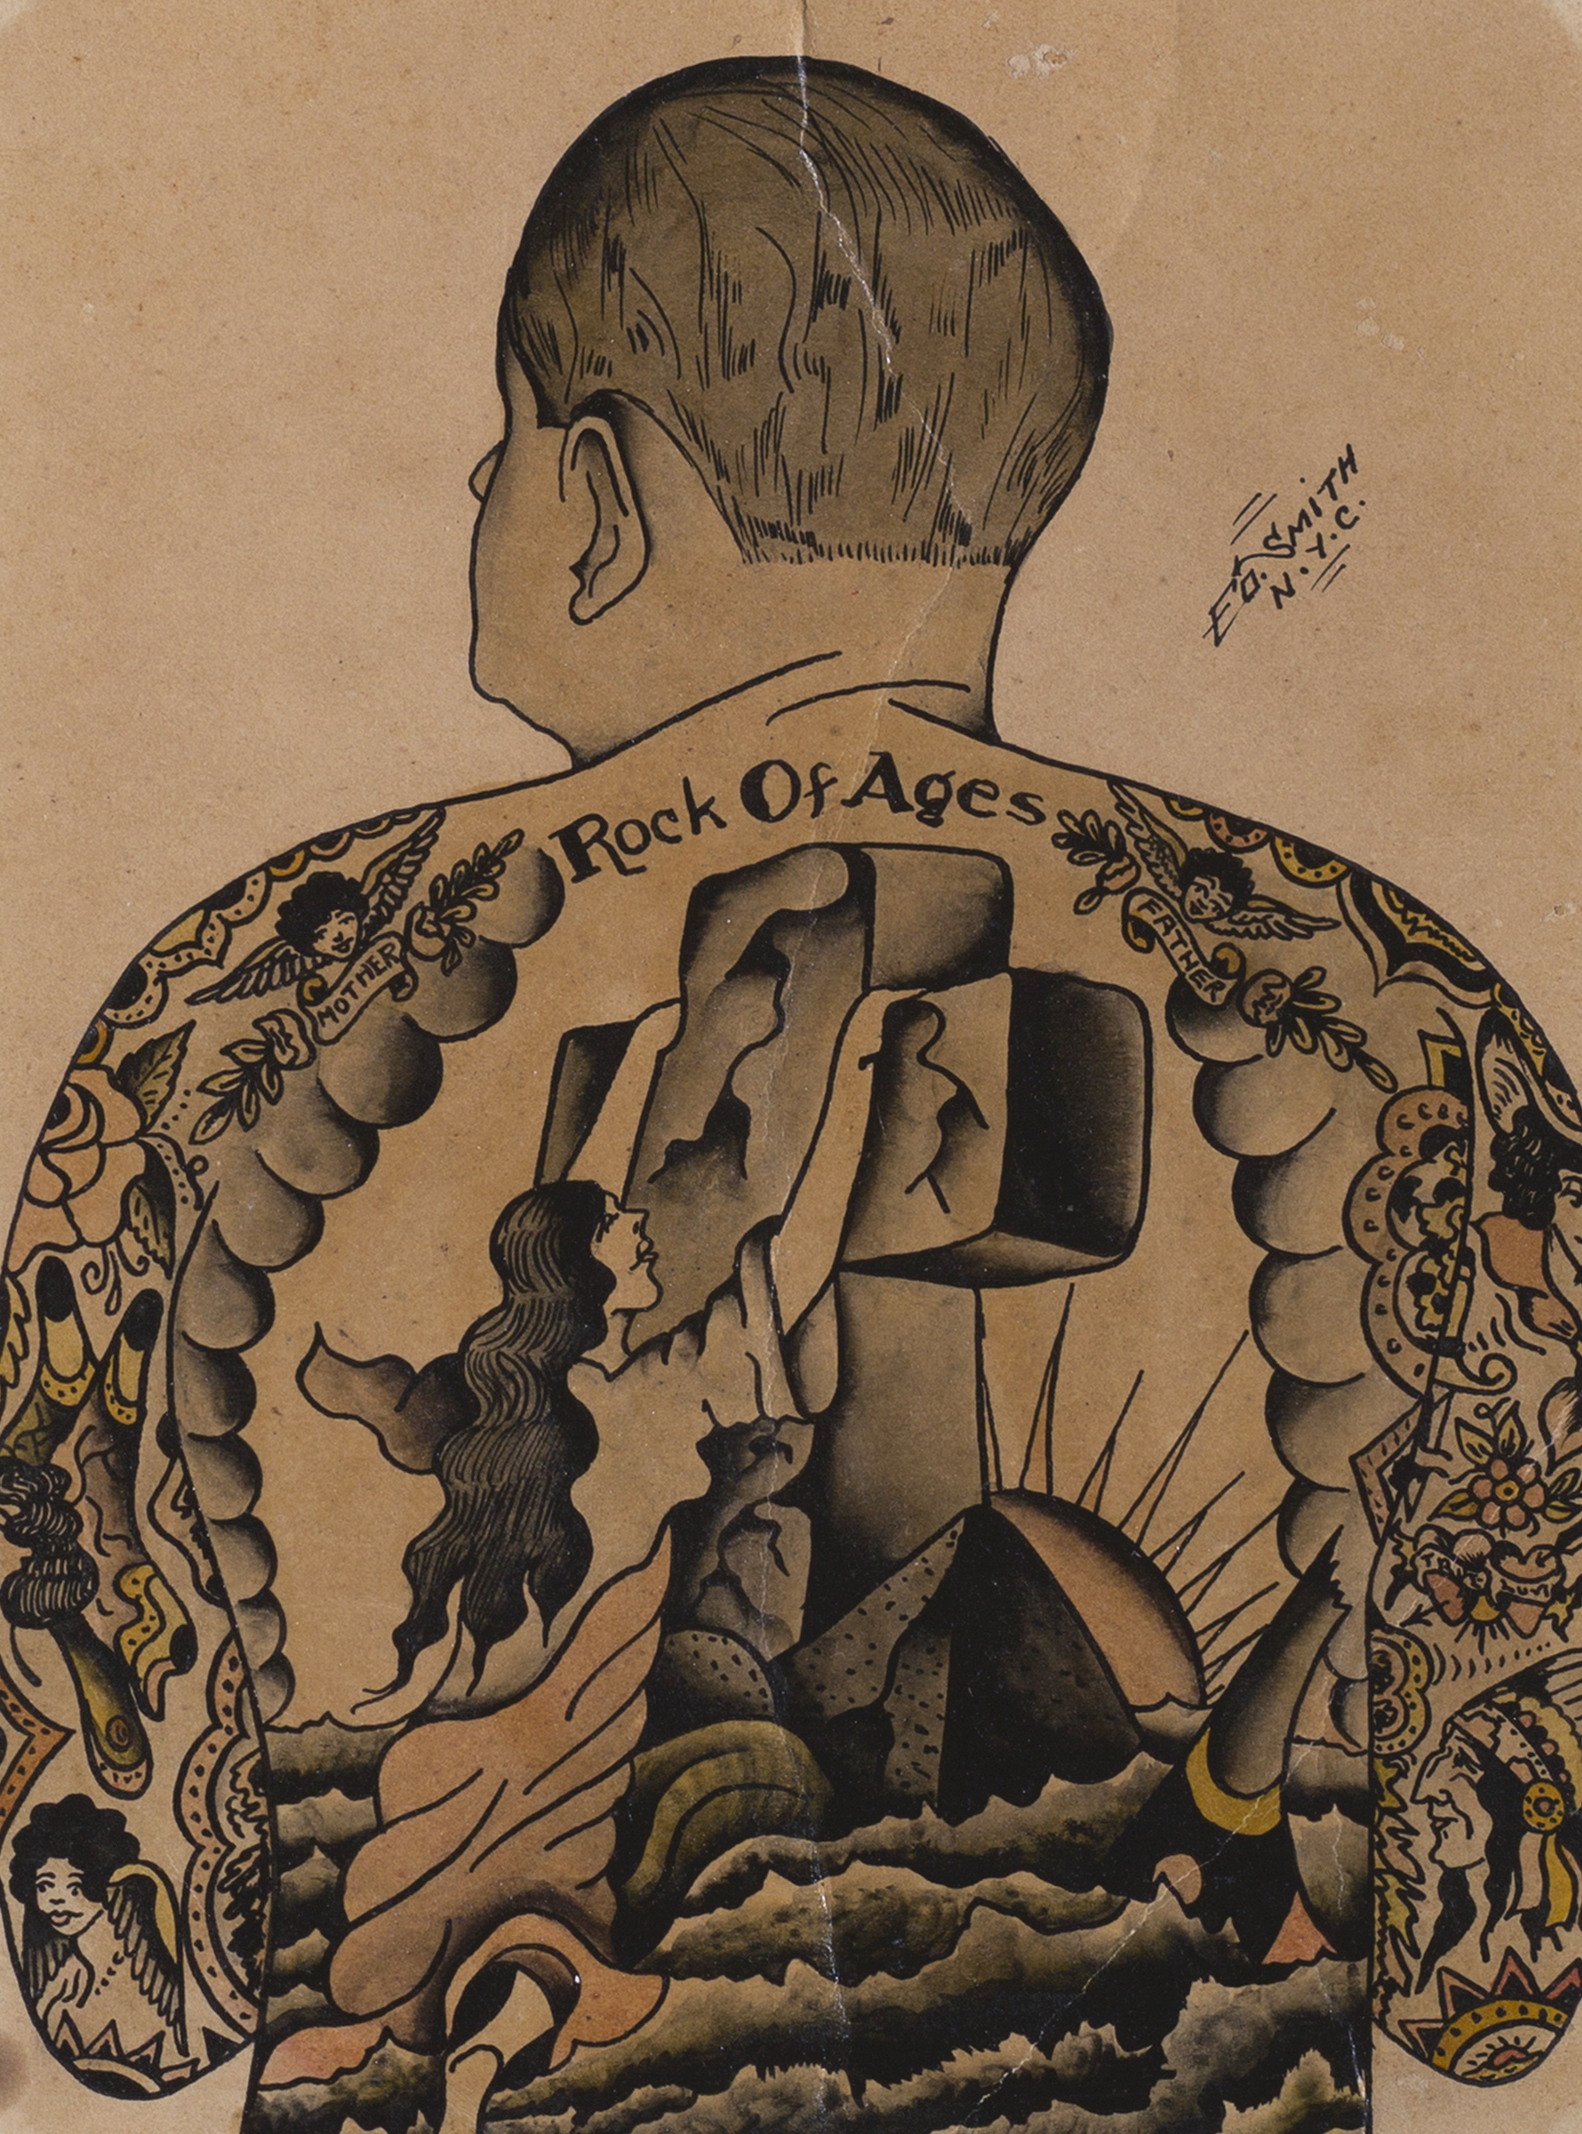 Self-Portrait Tattoo Flash, Painted by Ed Smith, NY, ca. 1930